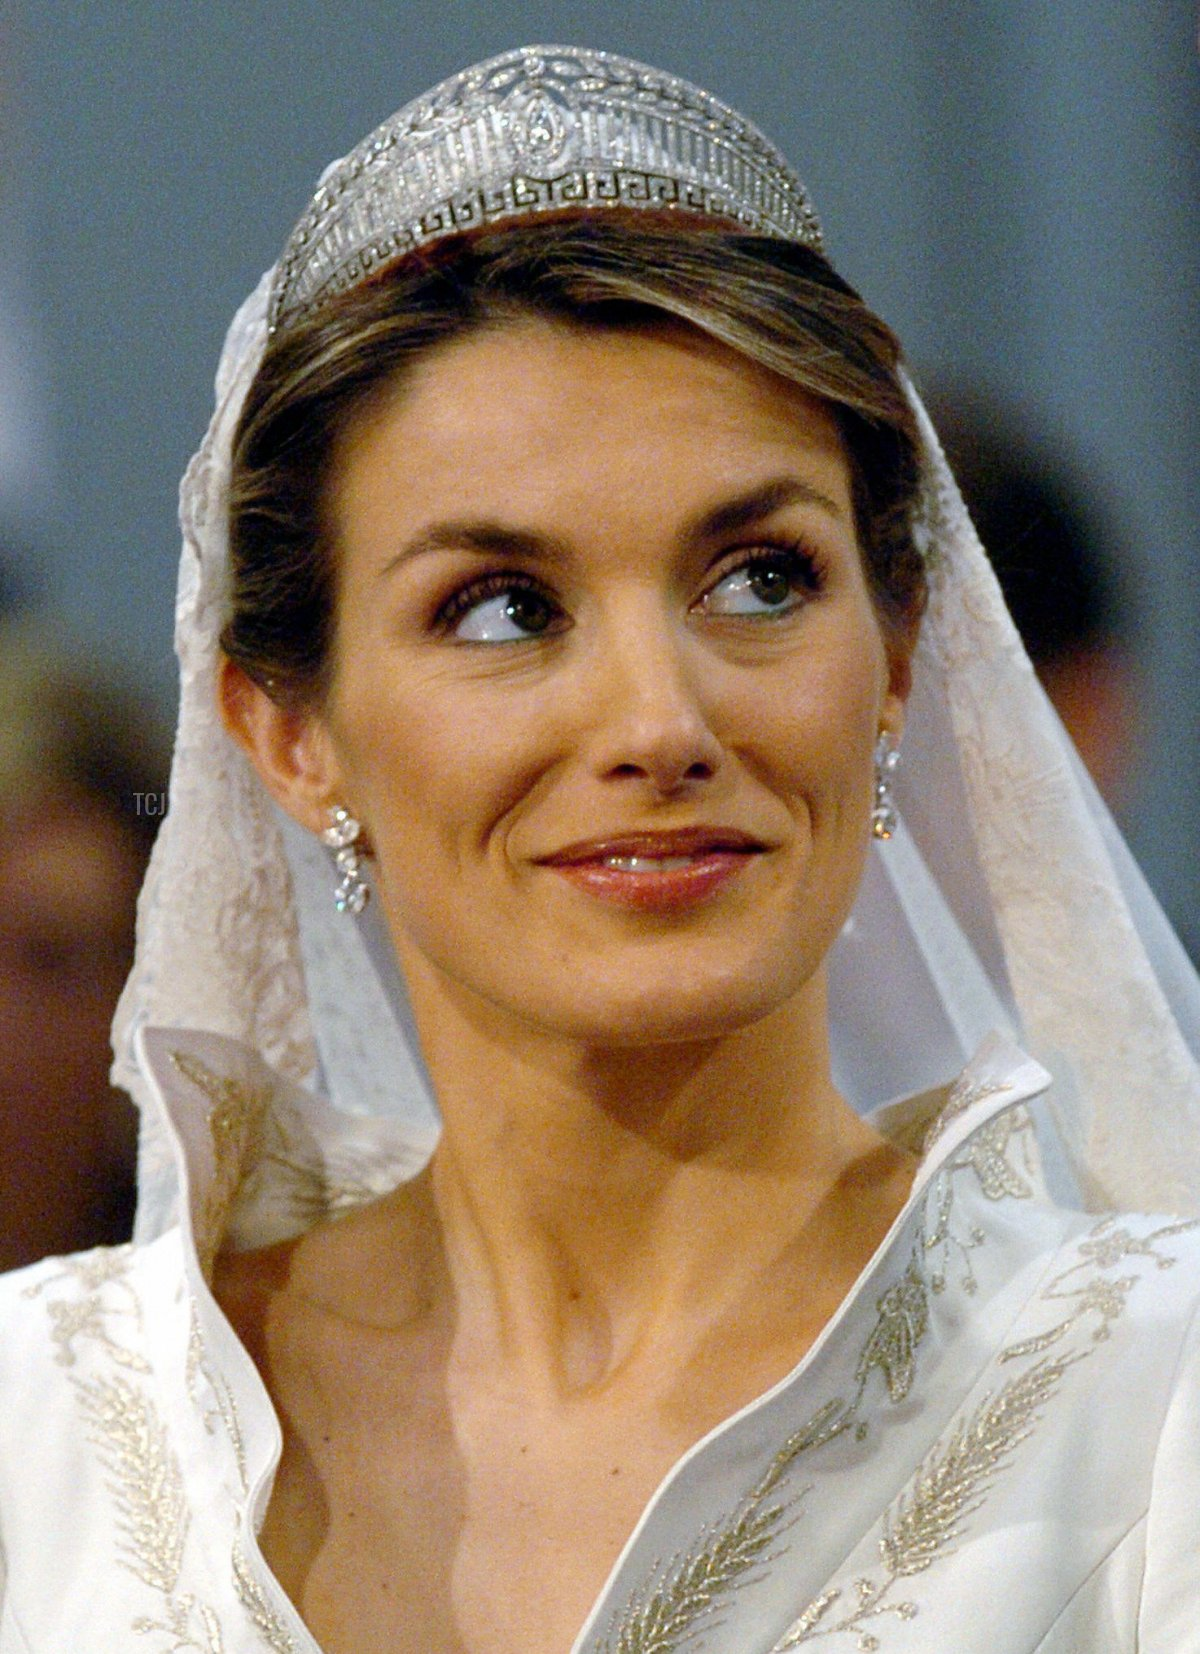 Picture taken 22 May 2004 shows newly-wed Princess Letizia standing in Madrid's Basilica of Atocha 22 May 2004